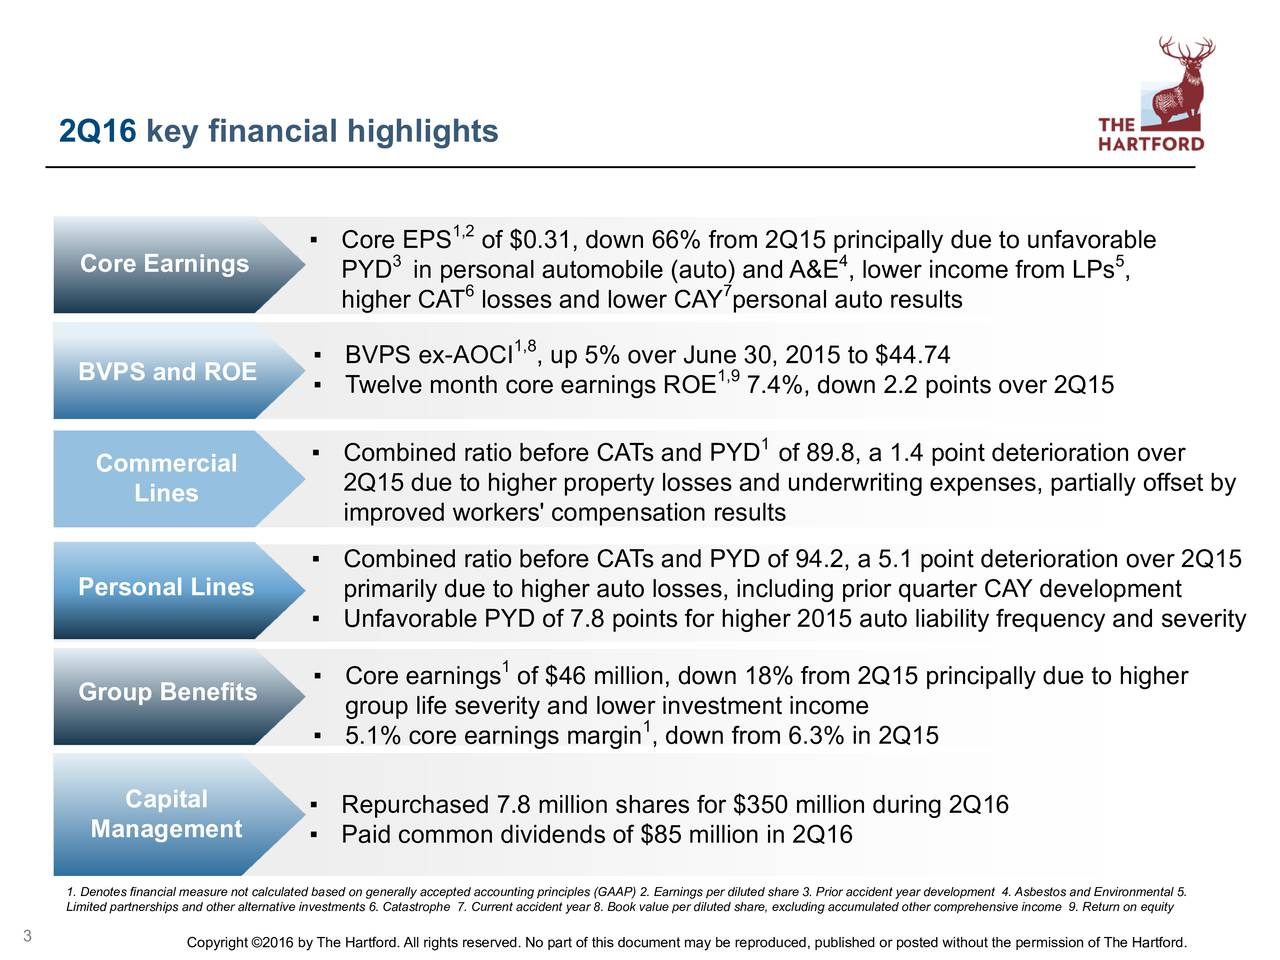 Core EPS 1,2of $0.31, down 66% from 2Q15 principally due to unfavorable Core Earnings 3 4 5 PYD in personal automobile (auto) and A&E , lower income from LPs , higher CAT losses and lower CAY personal auto results 1,8 BVPS and ROE  BVPS ex-AOCI , up 5% over June30, 201,9to $44.74 Twelve month core earnings ROE 7.4%, down 2.2 points over 2Q15 Combined ratio before CATs and PYD of 89.8, a 1.4 point deterioration over Commercial 2Q15 due to higher property losses and underwriting expenses, partially offset by Lines improved workers' compensation results Combined ratio before CATs and PYD of 94.2, a 5.1 point deterioration over 2Q15 Personal Lines primarily due to higher auto losses, including prior quarter CAY development Unfavorable PYD of 7.8 points for higher 2015 auto liability frequency and severity Core earnings of $46 million, down 18% from 2Q15 principally due to higher Group Benefits group life severity and lower investment income 5.1% core earnings margin , down from 6.3% in 2Q15 Capital  Repurchased 7.8 million shares for $350 million during 2Q16 Management Paid common dividends of $85 million in 2Q16 1. Denotes financial measure not calculated based on generally accepted accounting principles (GAAP) 2. Earnings per diluted share 3. Prior accident year development 4. Asbestos and Environmental 5. Limited partnerships and other alternative investments 6. Catastrophe 7. Current accident year 8. Book value per diluted share, excluding accumulated other comprehensive income 9. Return on equity 3 Copyright 2016 by The Hartford. All rights reserved. No part of this document may be reproduced, published or posted without the permission of The Hartford.